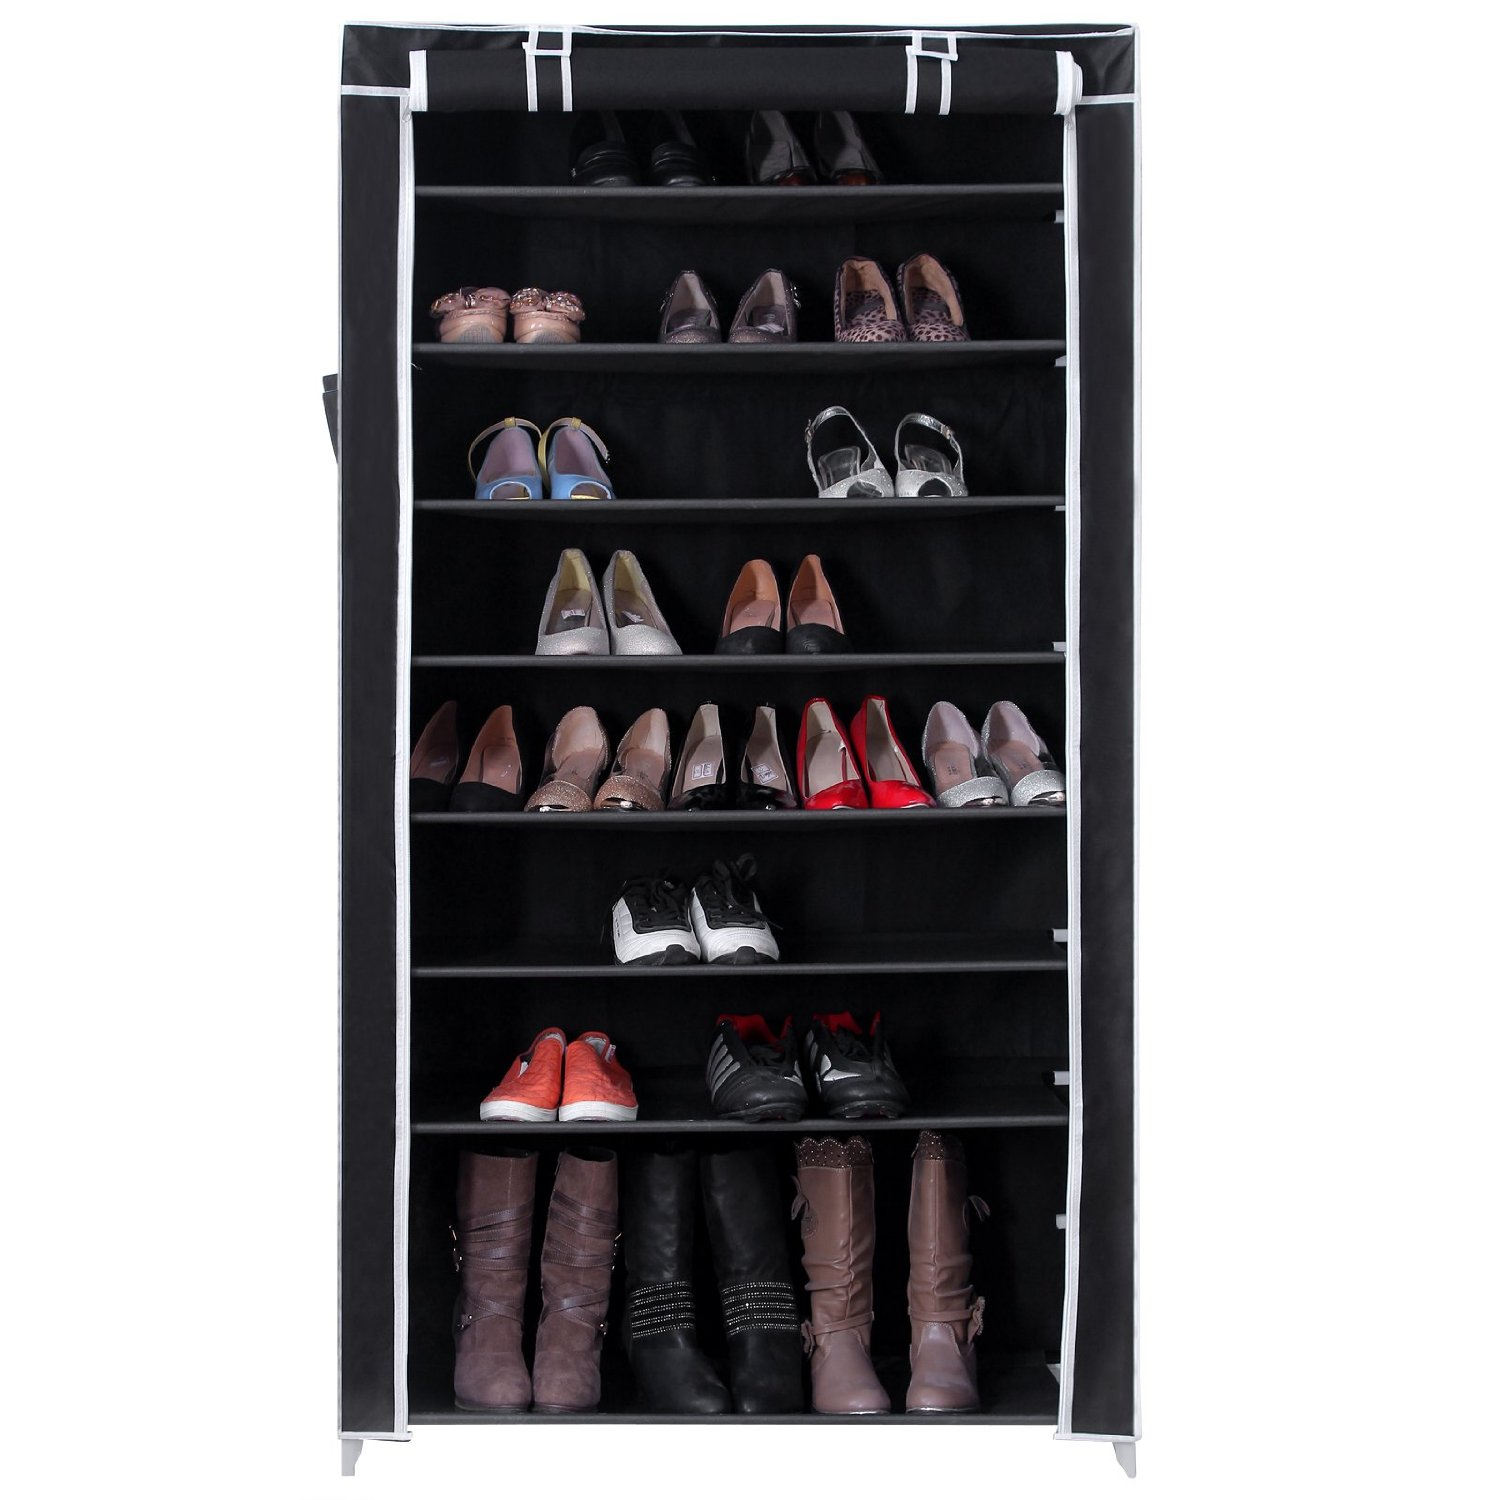 Grand Meuble Chaussure Acheter Meuble Chaussure Armoire A Chaussure Etagere